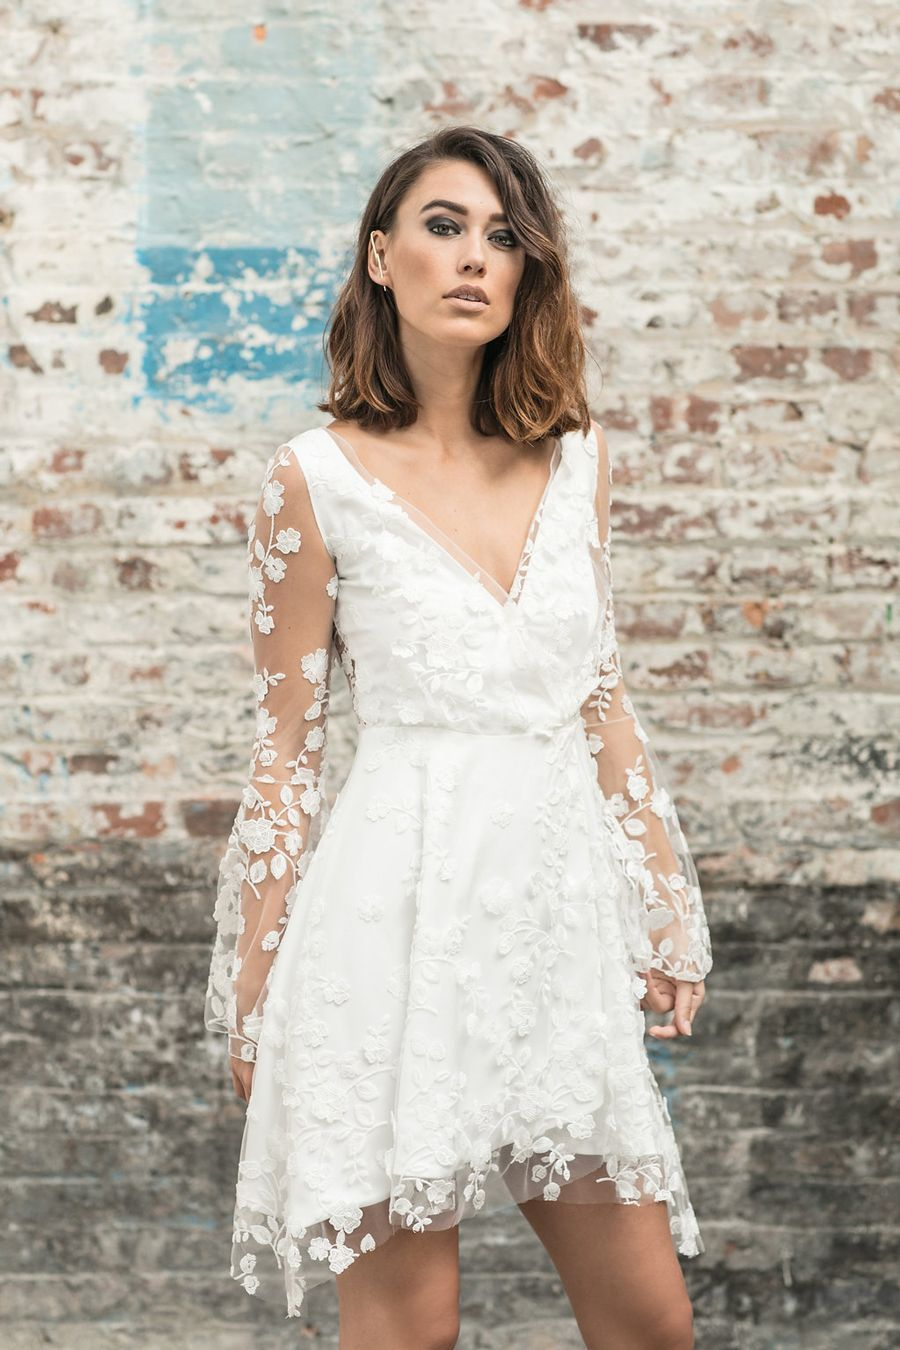 Short Wedding Dress Are Perfect For Spring Or Summer Weddings Click Through Our Short Wedding Dress Long Sleeve Short Wedding Dress Knee Length Wedding Dress [ 1350 x 900 Pixel ]